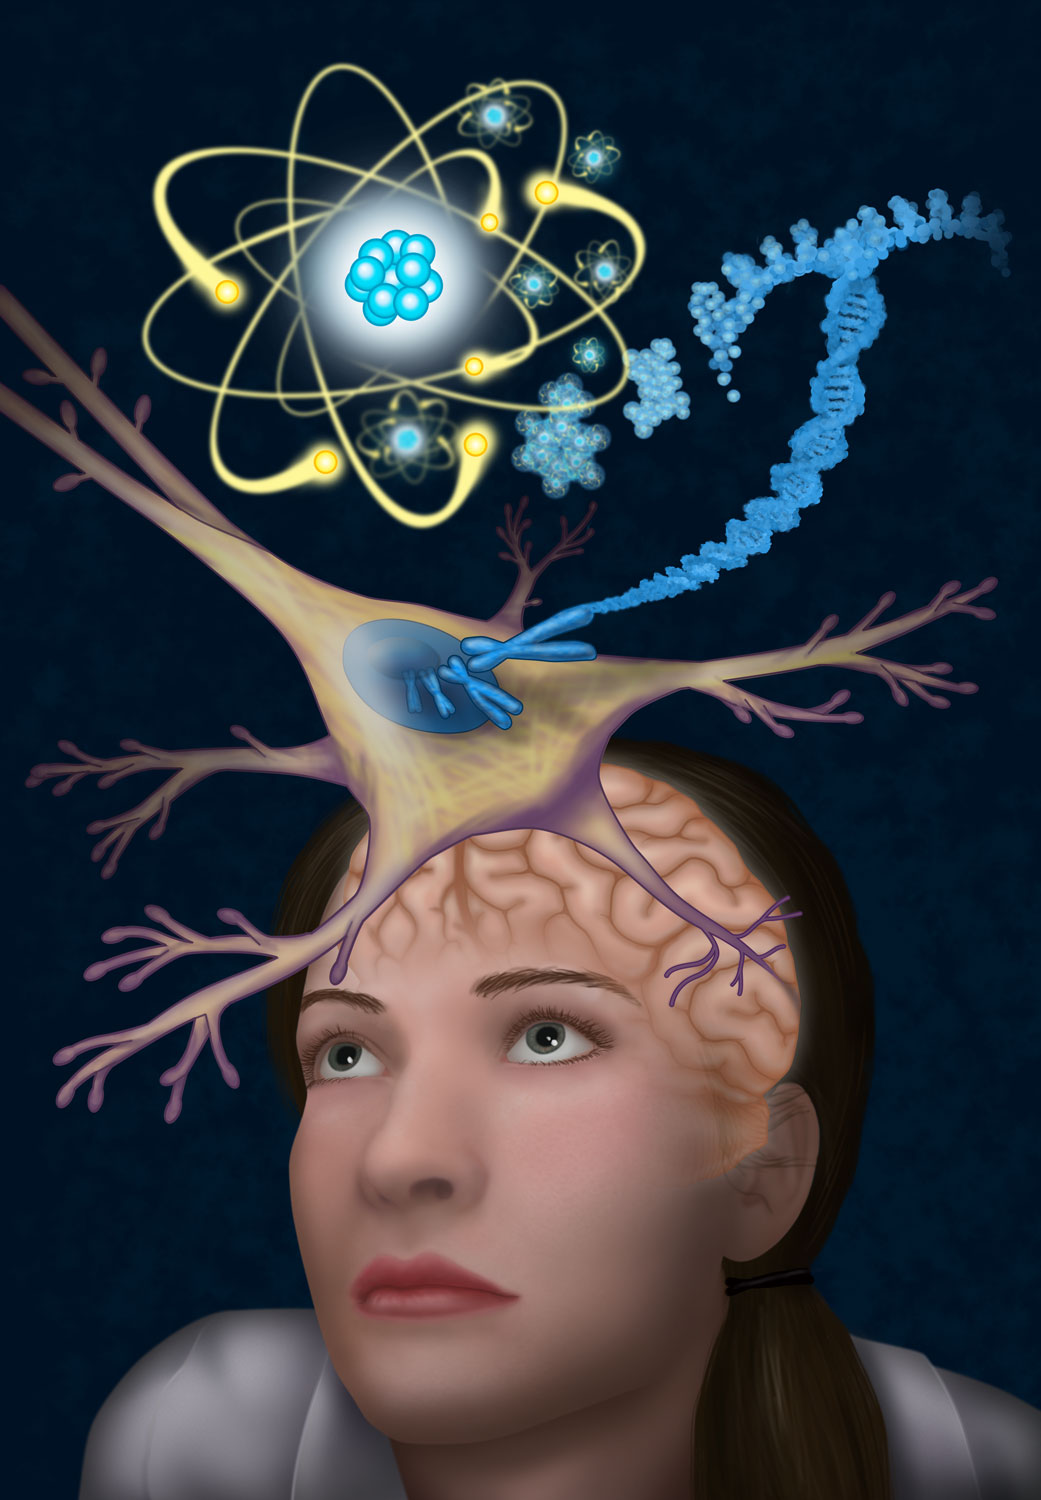 Beginning Biology lab cover for The University of Central Arkansas Adobe Illustrator & Photoshop